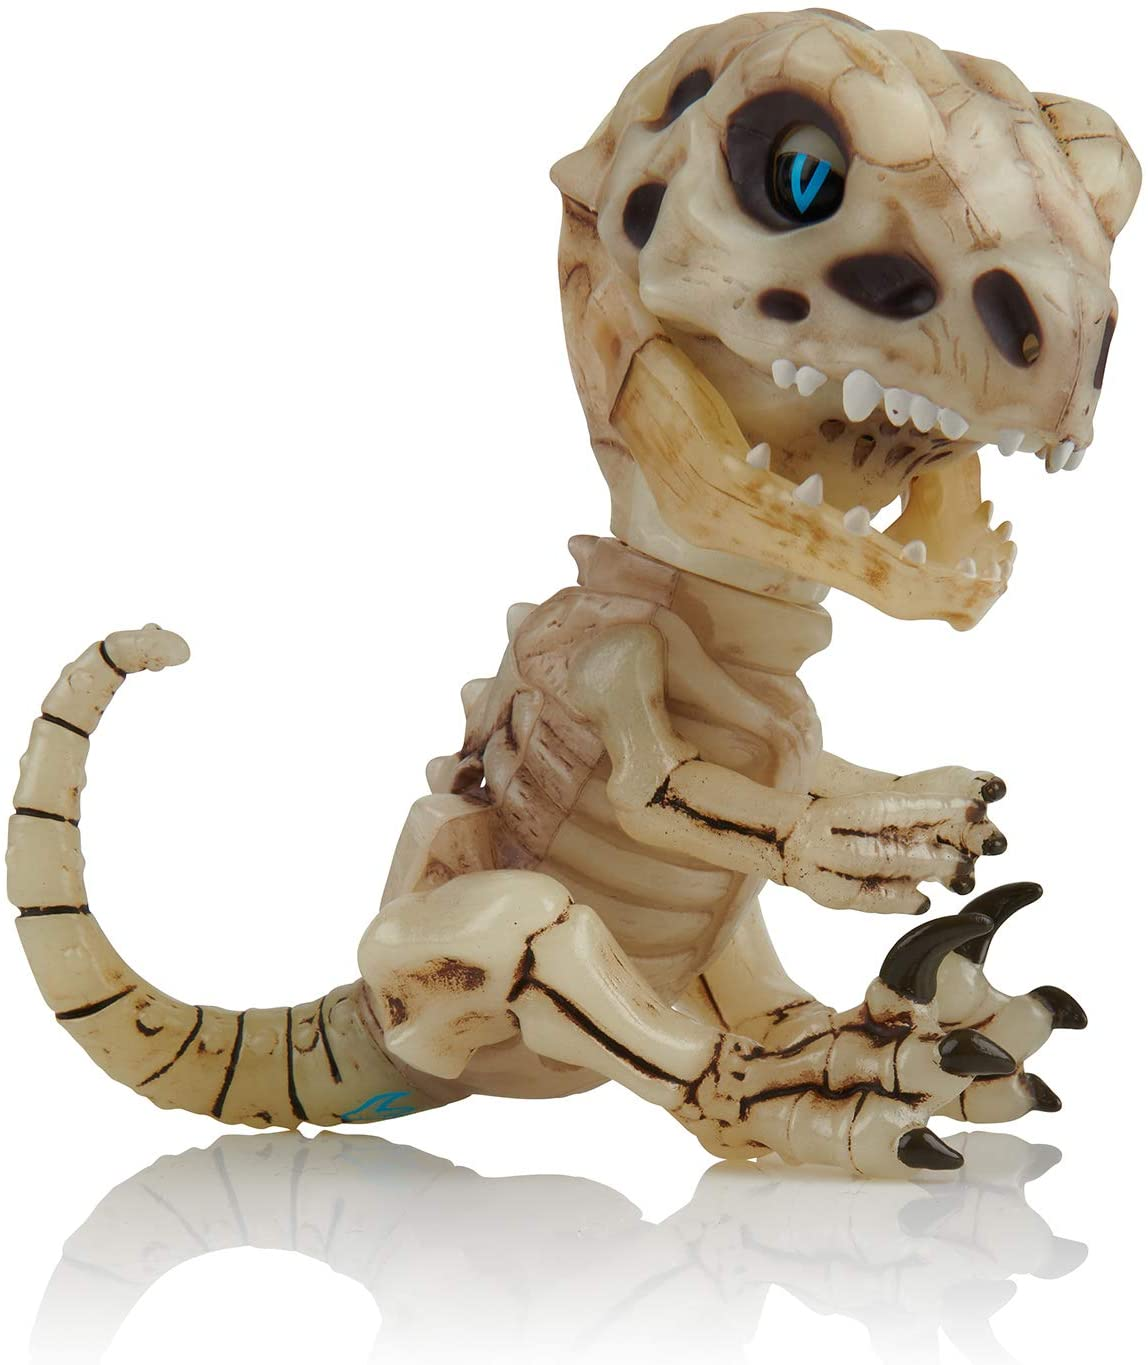 Ferocious Raptor Skeleton Finger Toy Melancholy (Sand) Color Collectible Interactive Dinosaur Toy